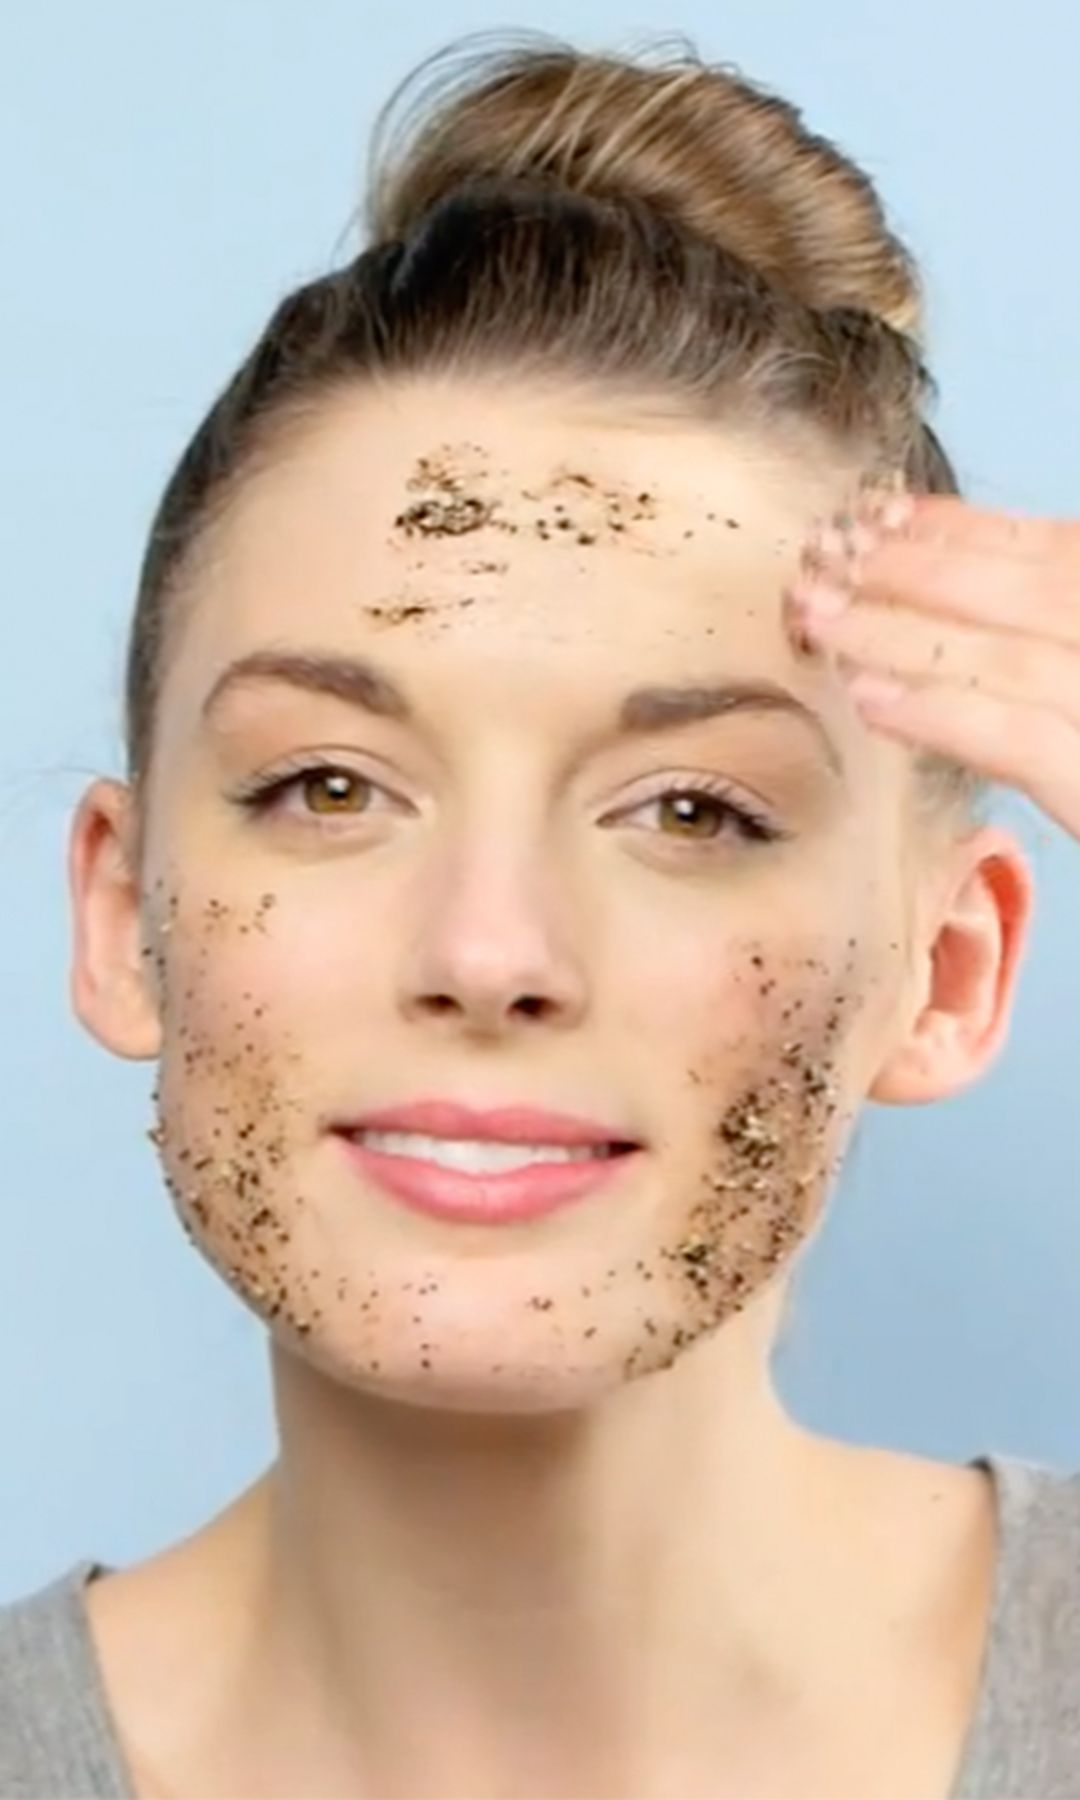 Diy kitchen face masks cosmetics pinterest face masks spa treat yourself to a spa nightat home make your own natural face masks with ingredients from your kitchen solutioingenieria Images